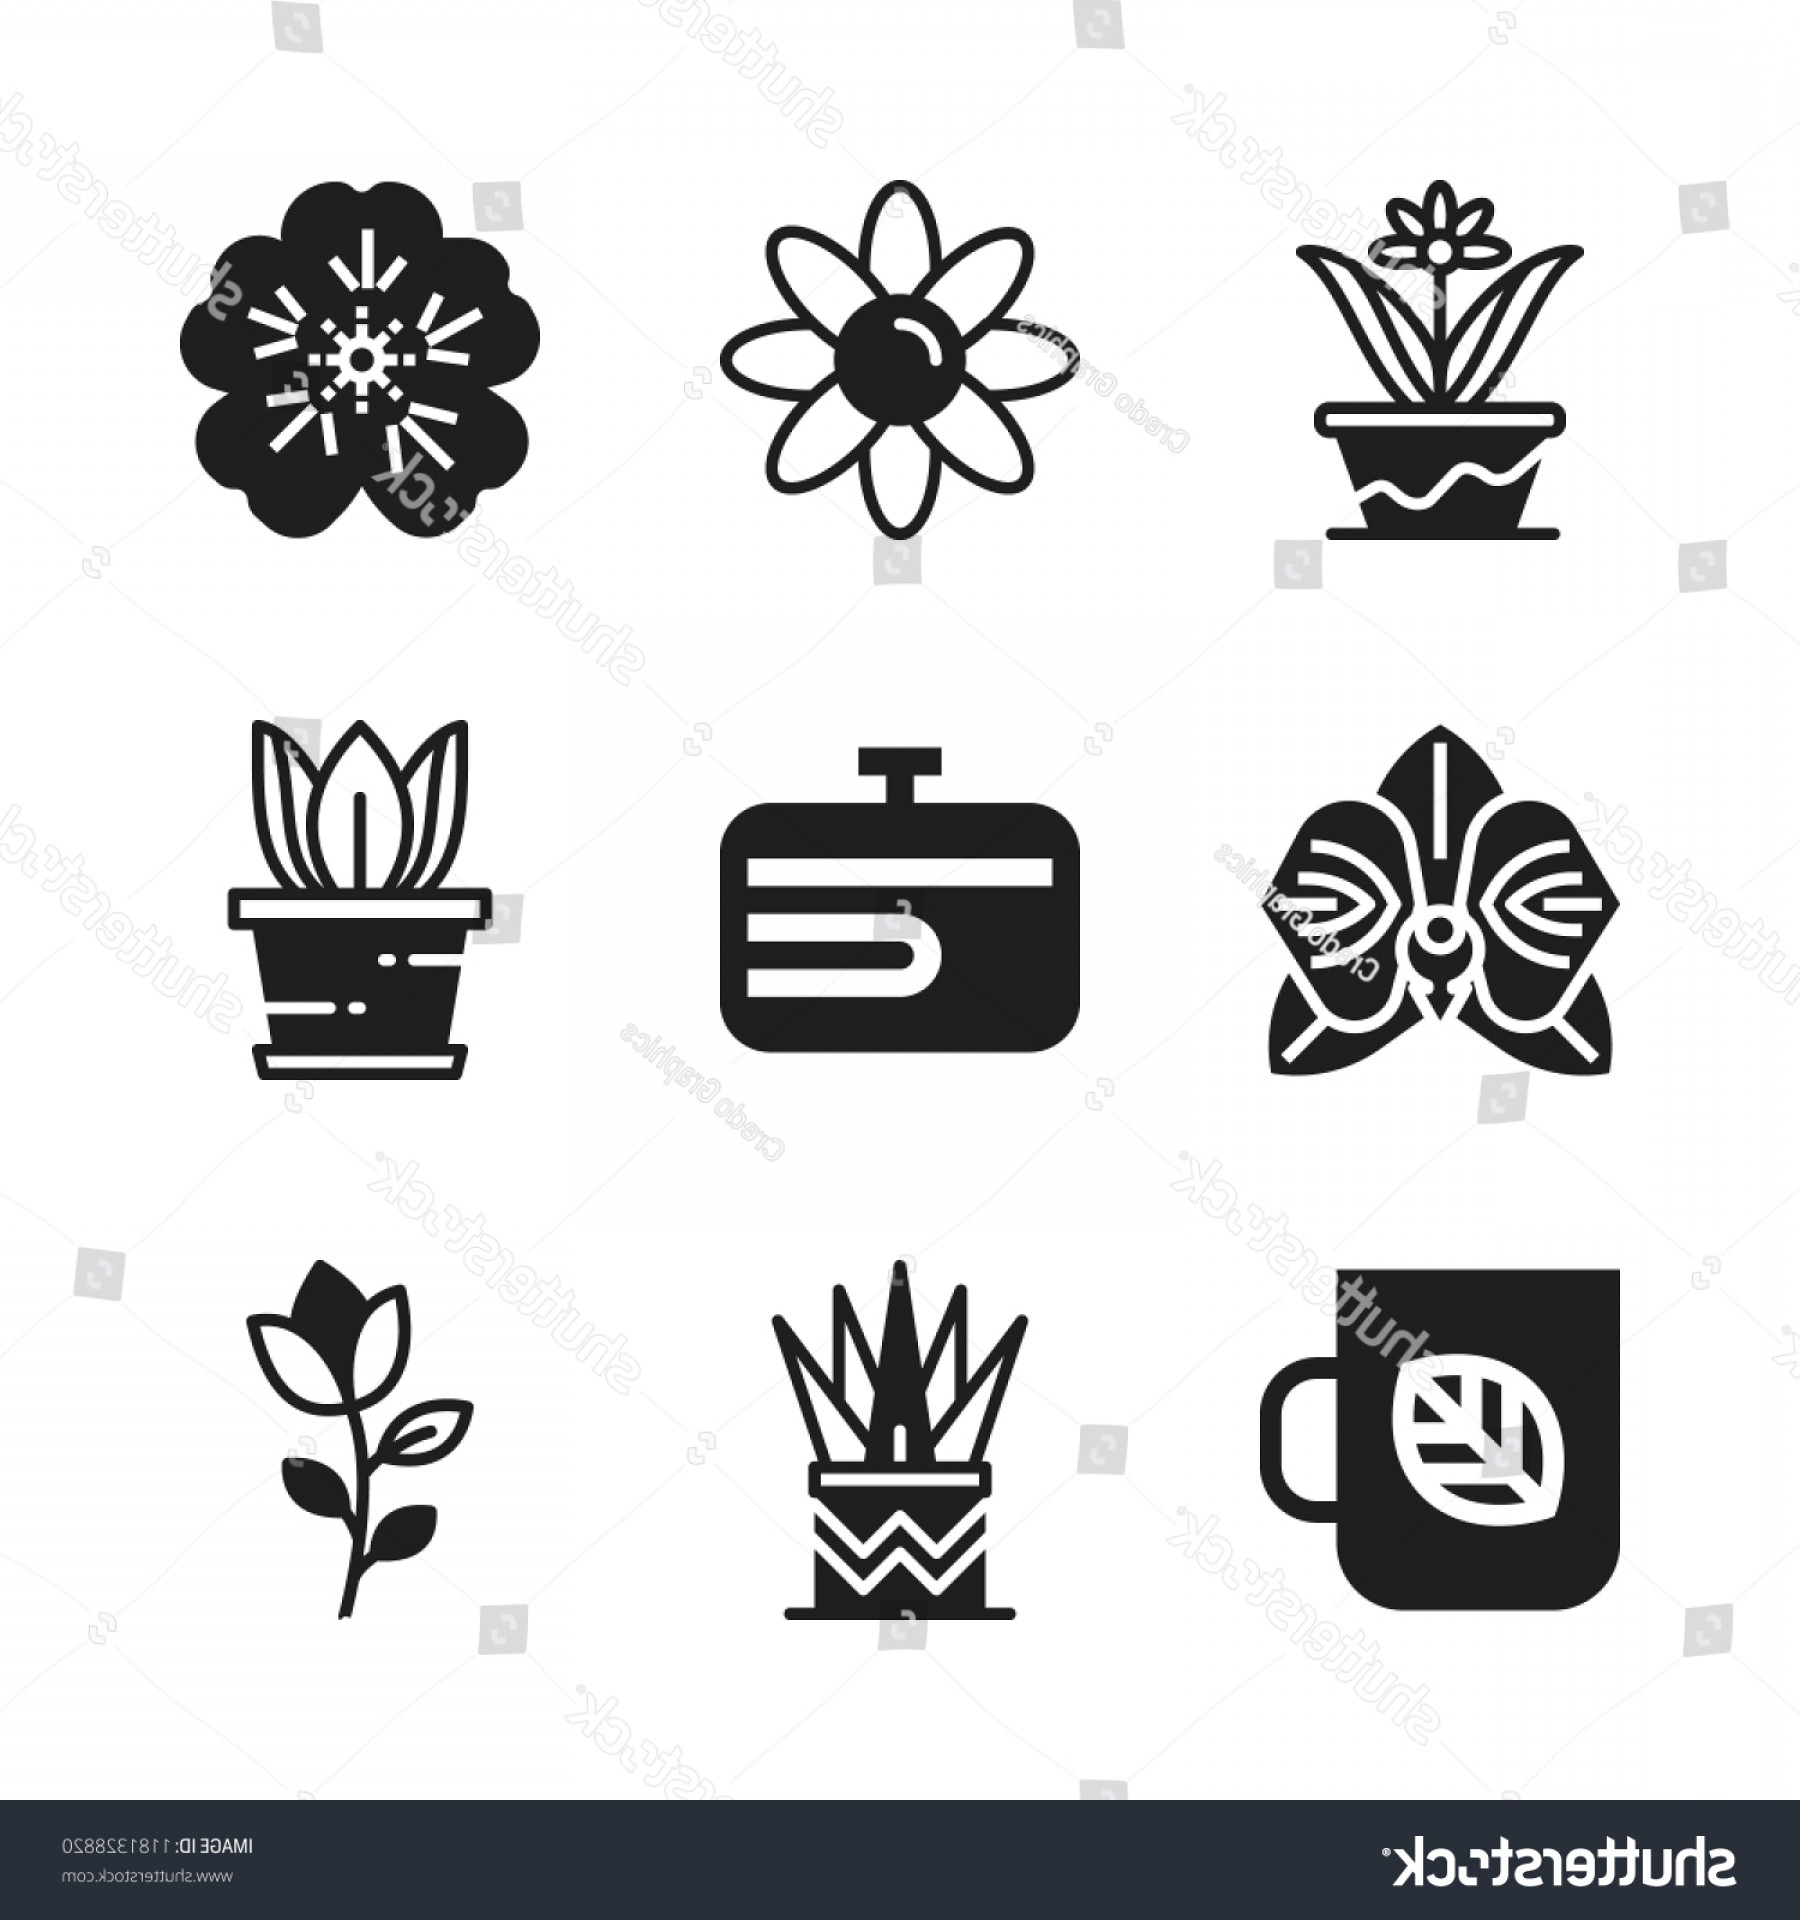 Floral Vector Icon: Floral Icon Vector Icons Set